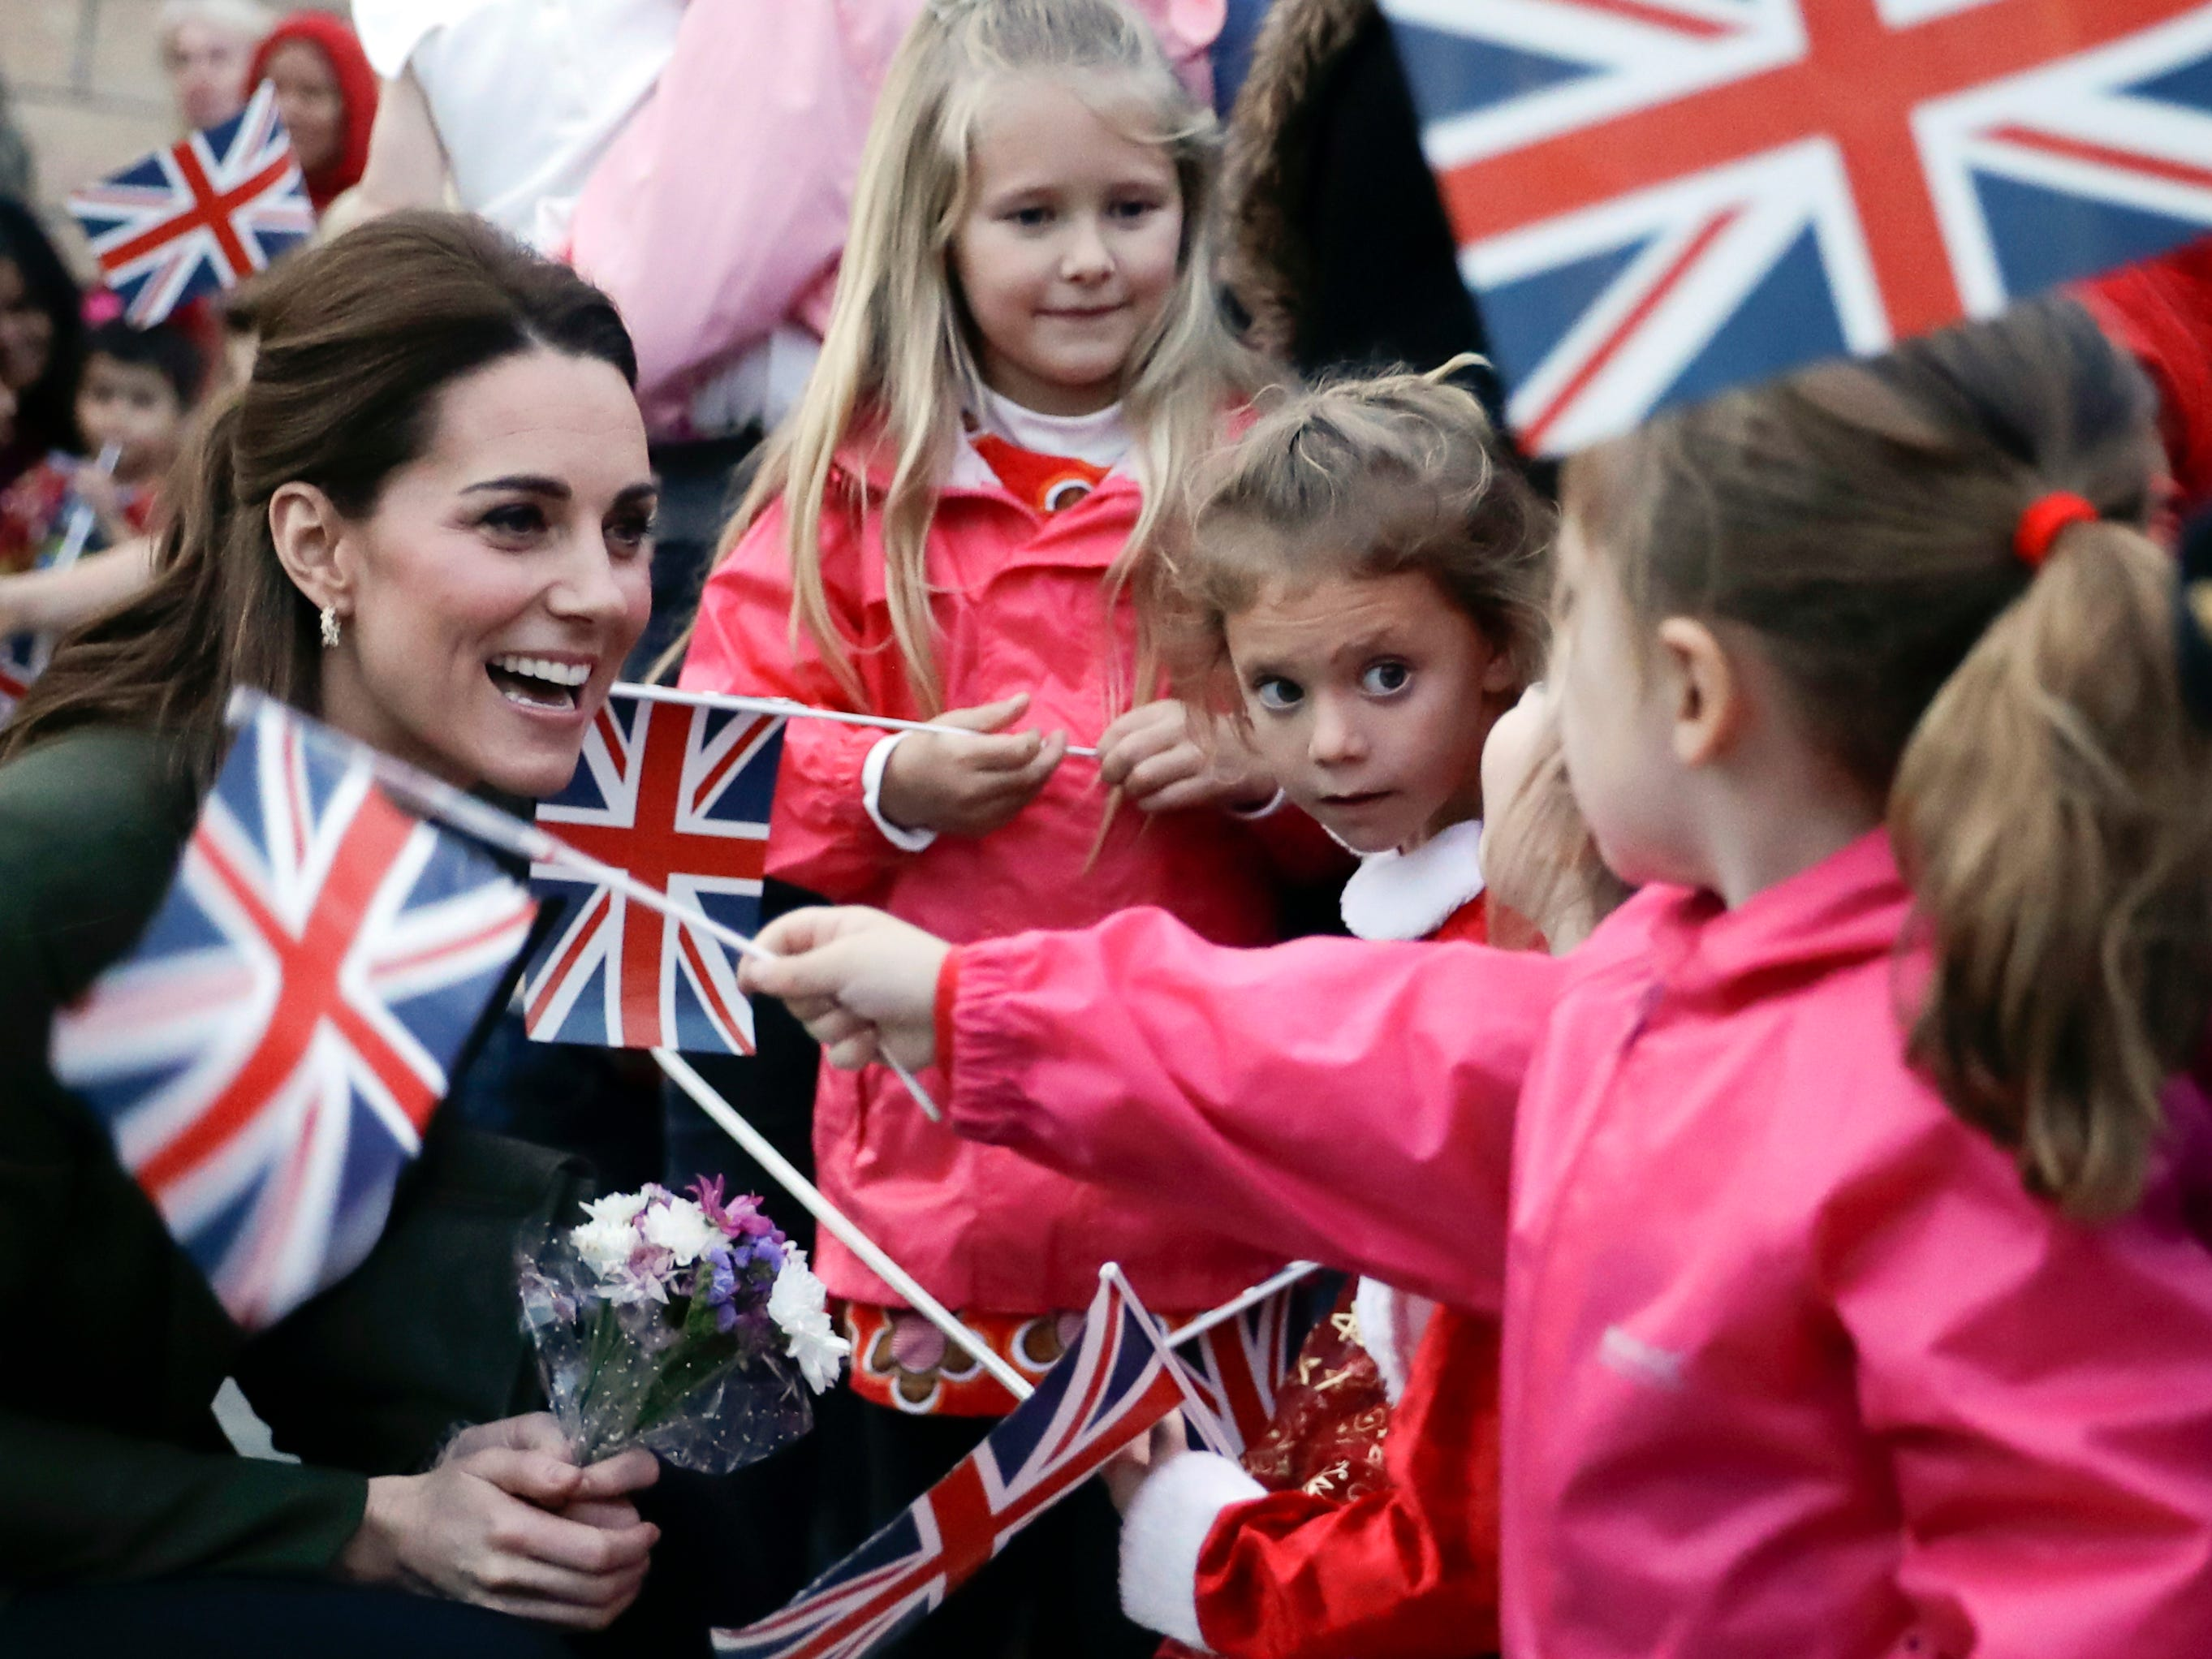 Kate, the Duchess of Cambridge, greets family members of personnel at the Akrotiri Royal Air Force base, near the south coastal city of Limassol, Cyprus, Wednesday, Dec. 5, 2018. The RAF Akrotiri is the home of the Cyprus Operations Support Unit, which supplies  operations in the region to protect the UK's strategic interests.